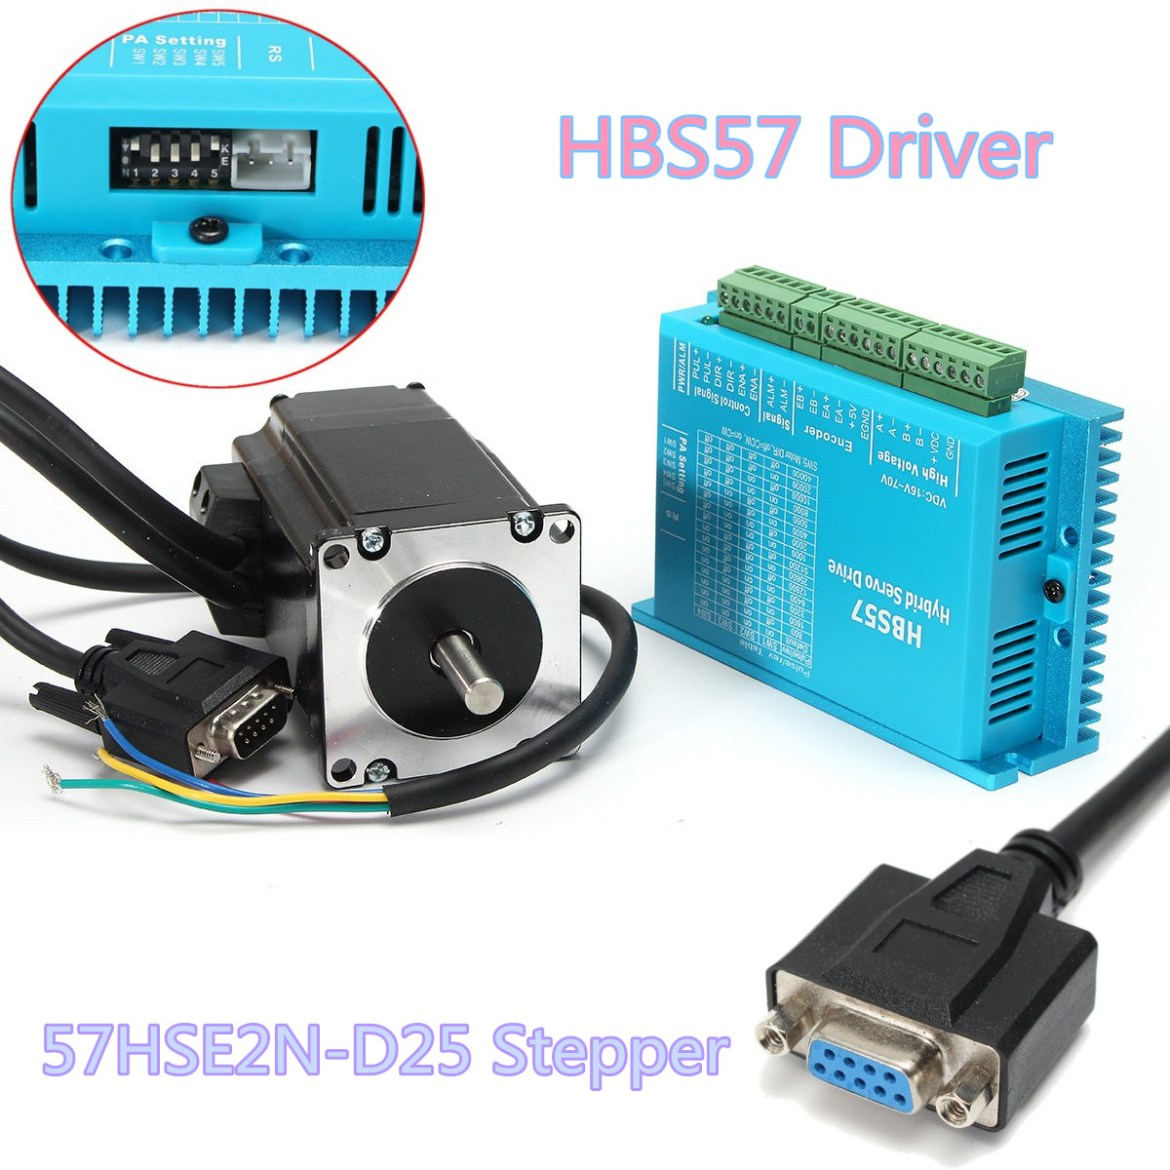 High Speed Closed Loop Stepper Motor + HBS57 Stepper Driver + Coding Cable Kit